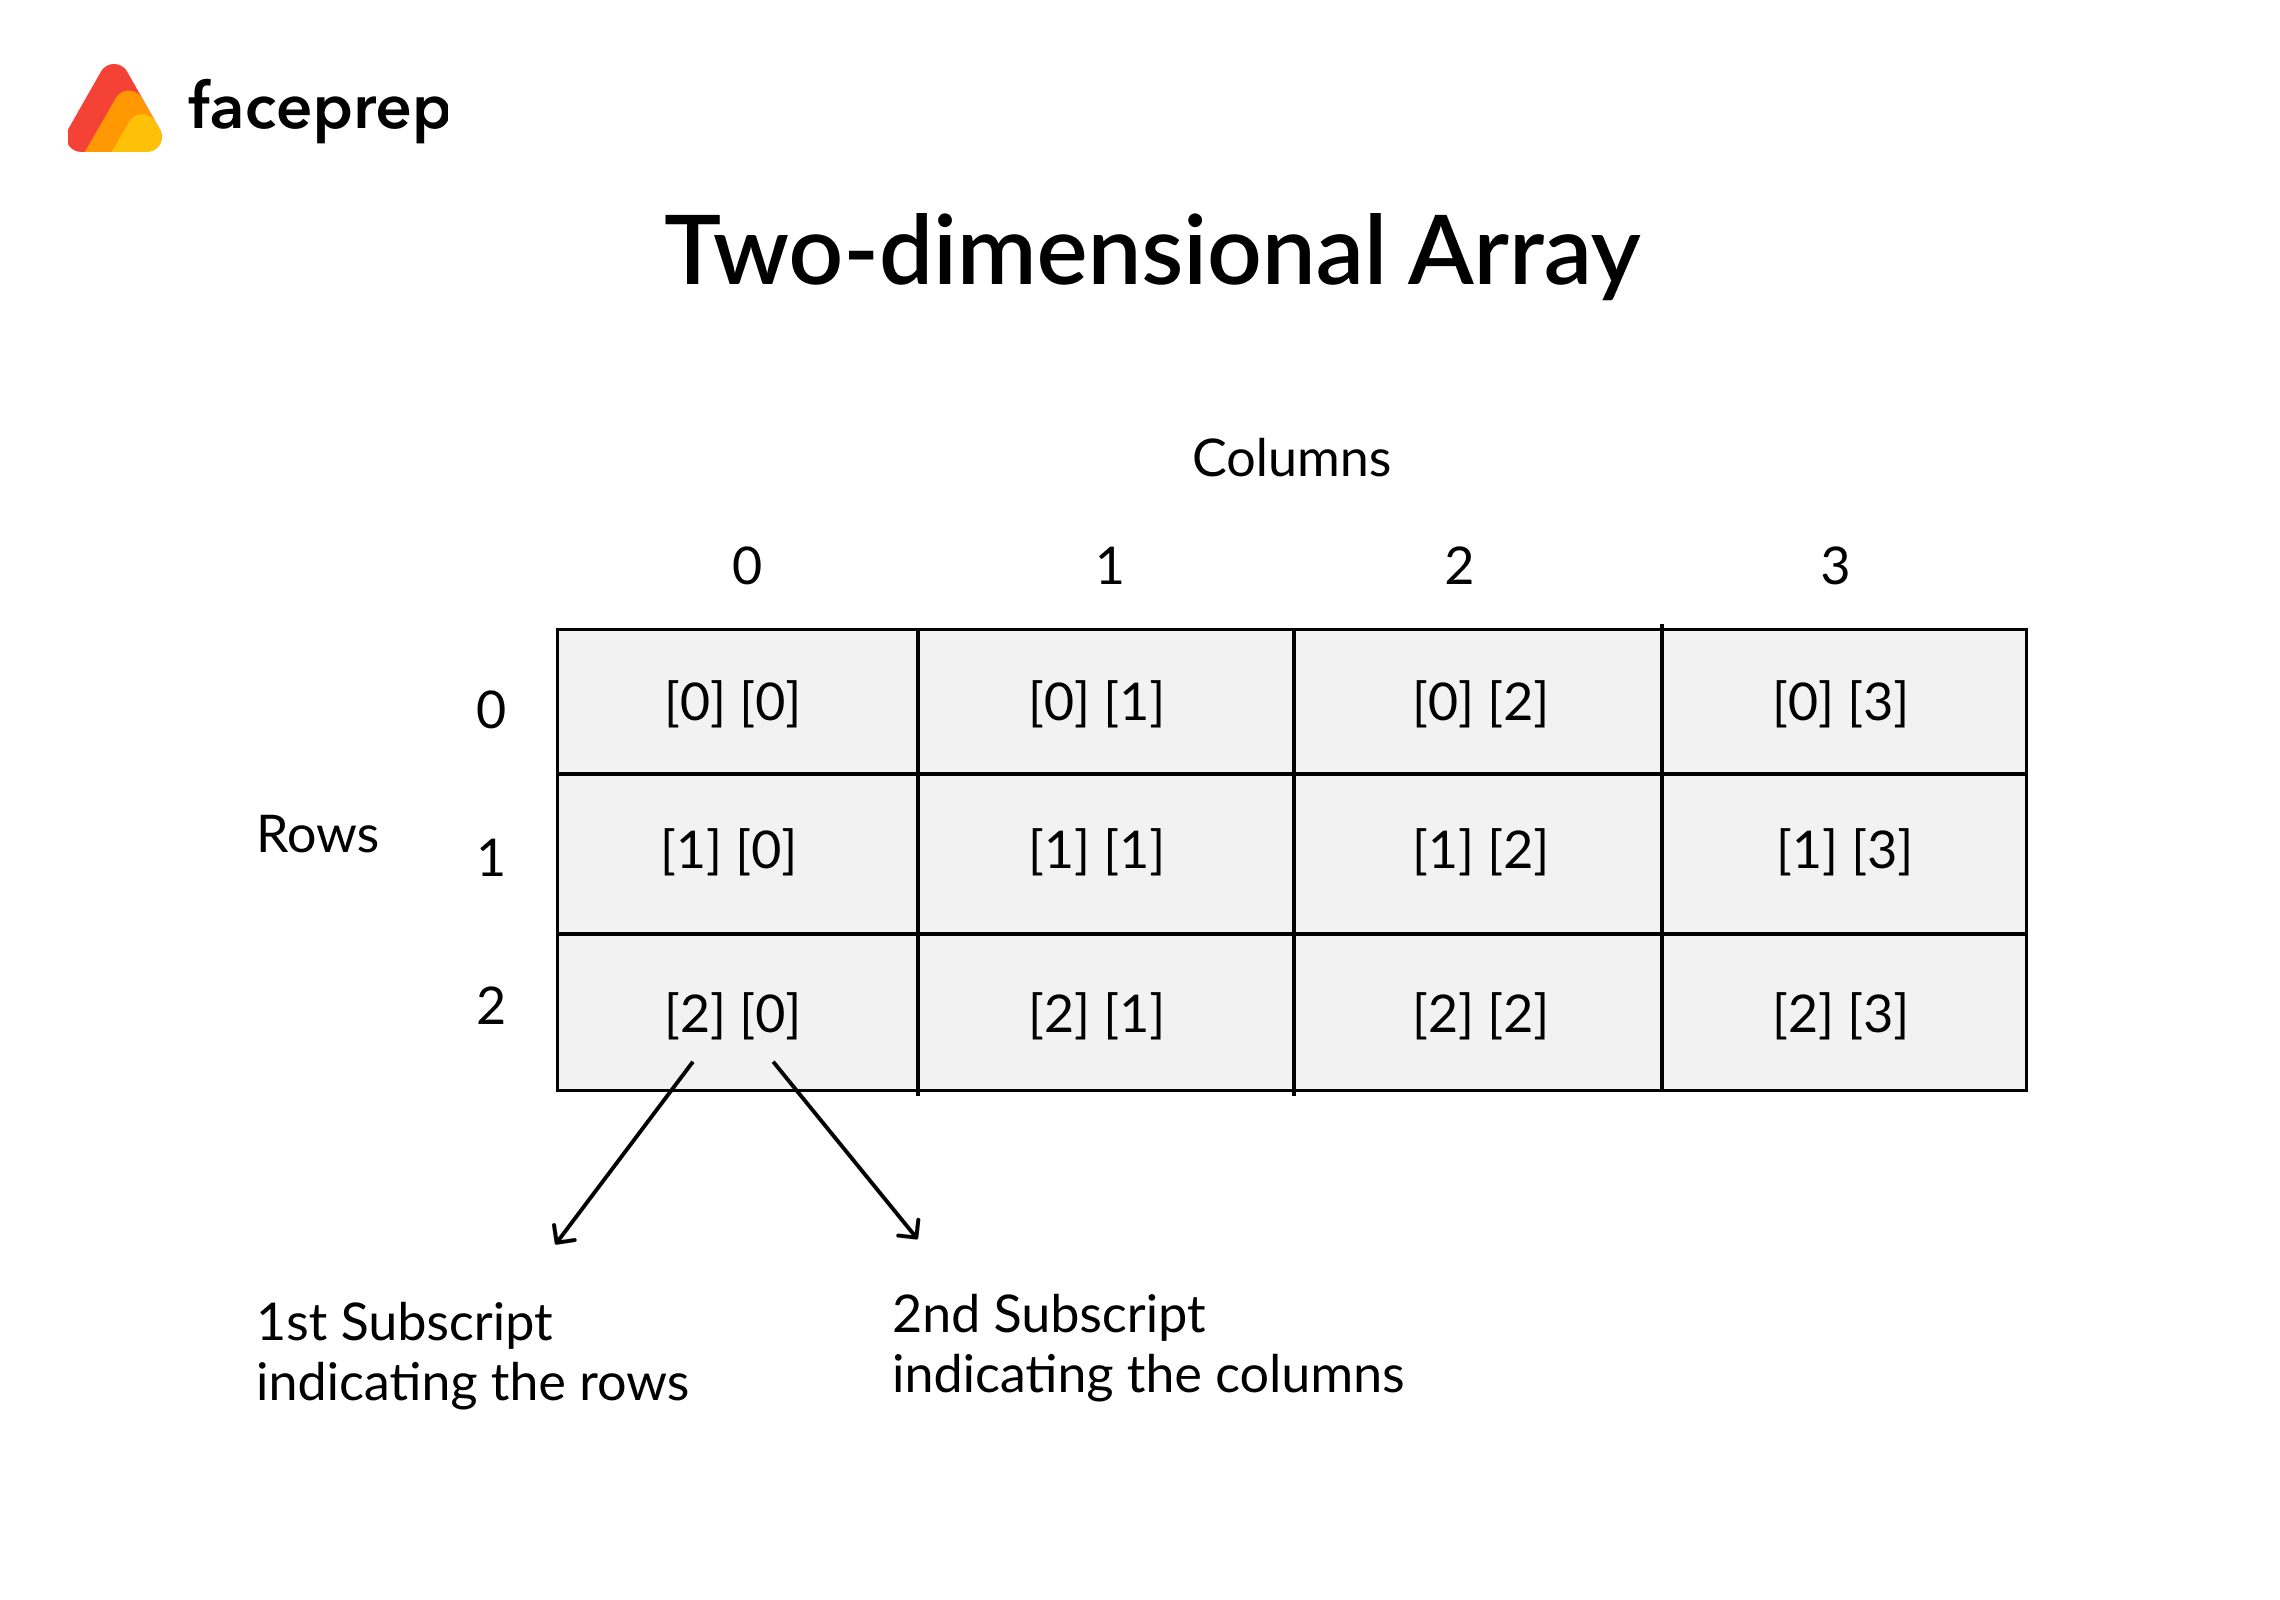 Types of arrays - two dimensional arrays